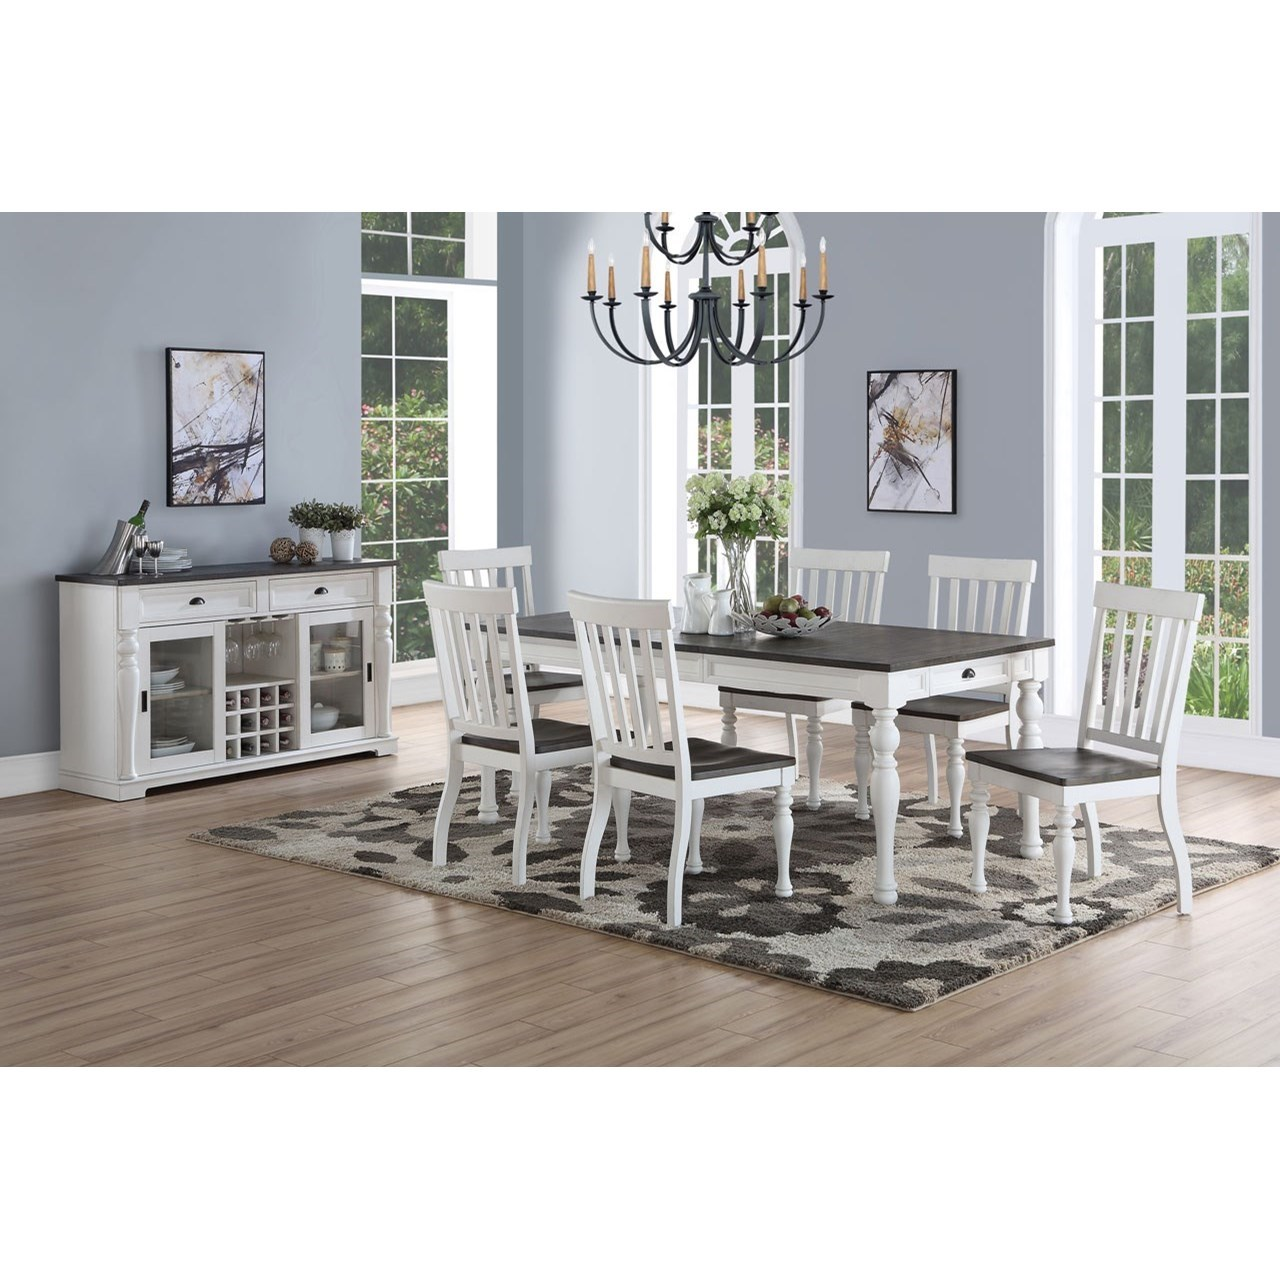 Joanna Dining Room Group by Steve Silver at Northeast Factory Direct